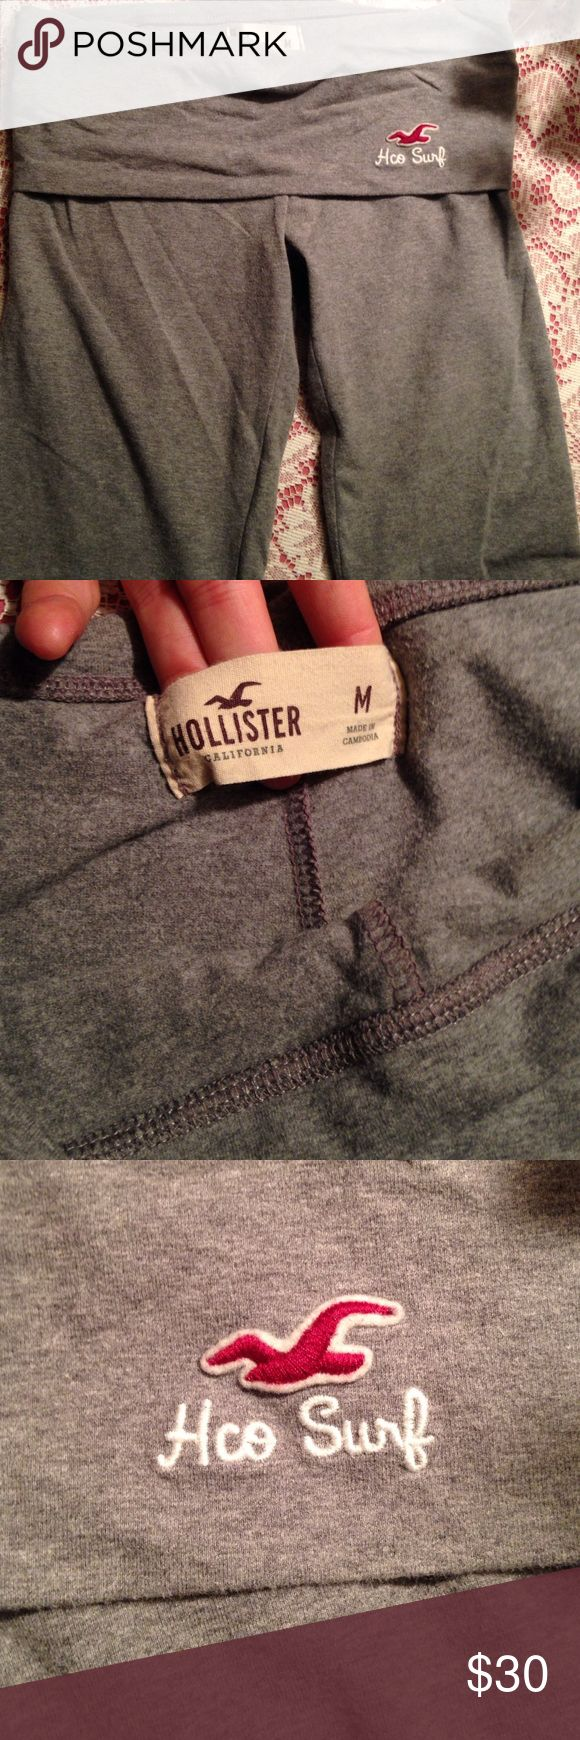 Hollister leggings Gray Hollister leggings. Light gray color with Hollister in white on the back of waist band. Barely warn. Great condition. Hollister Pants Leggings